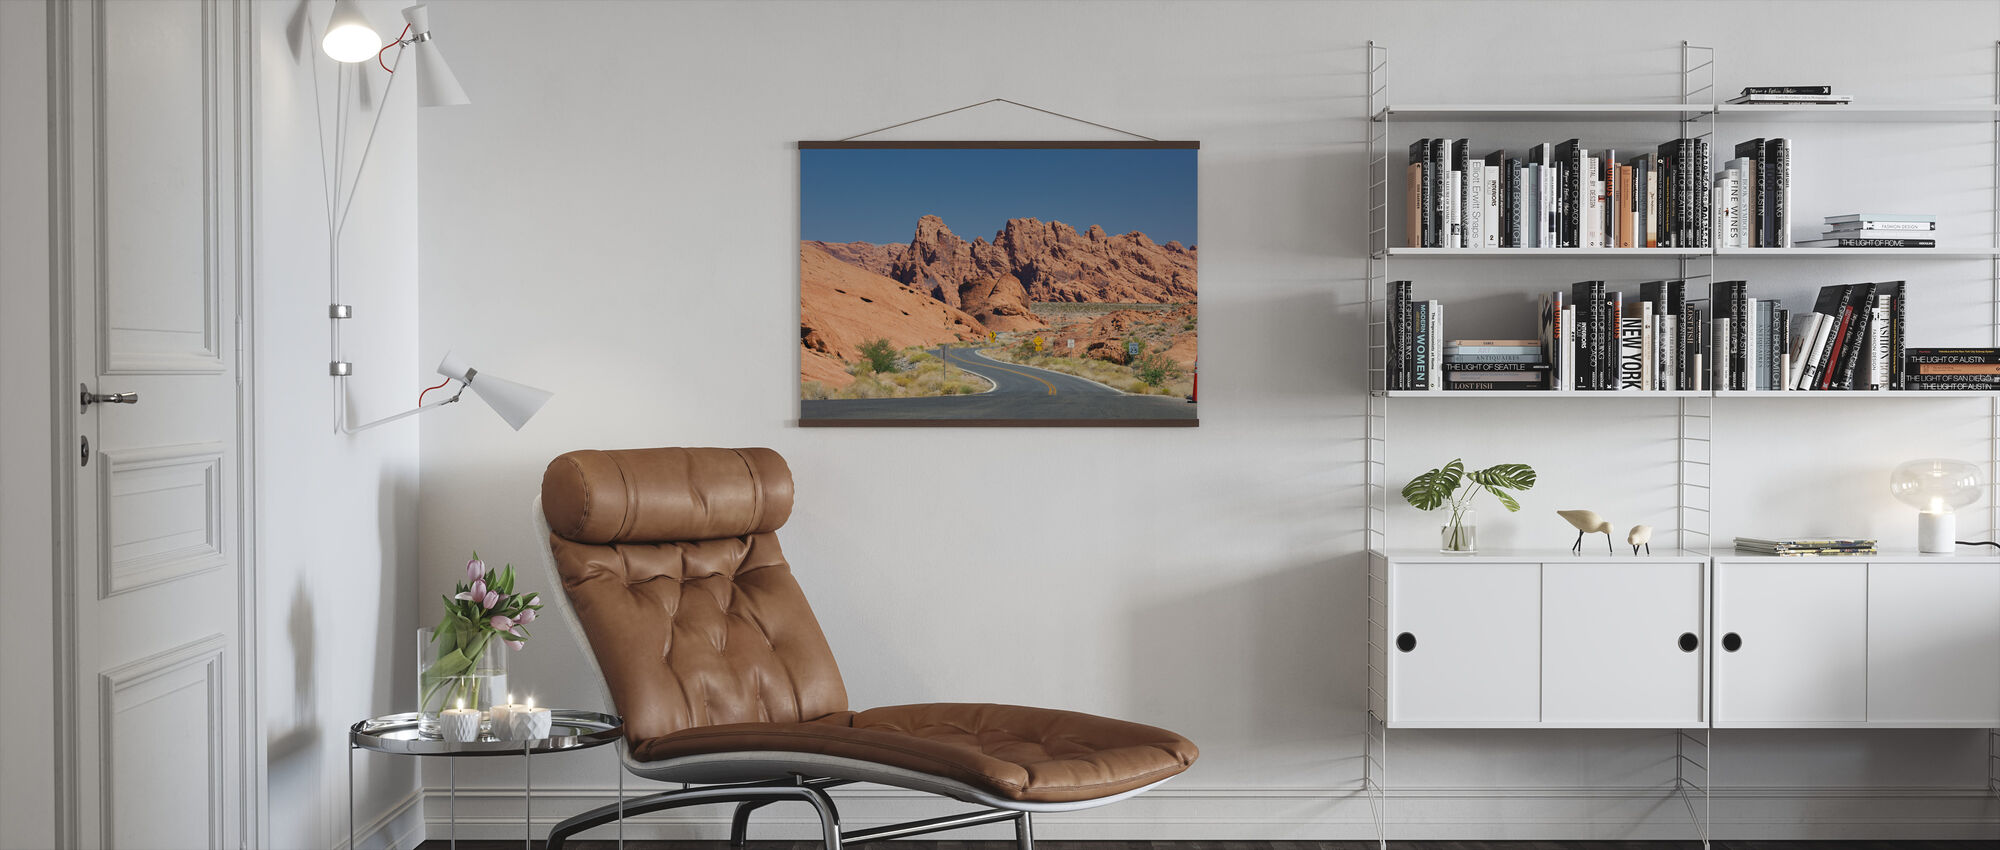 Valley of Fire in Nevada, USA - Poster - Living Room